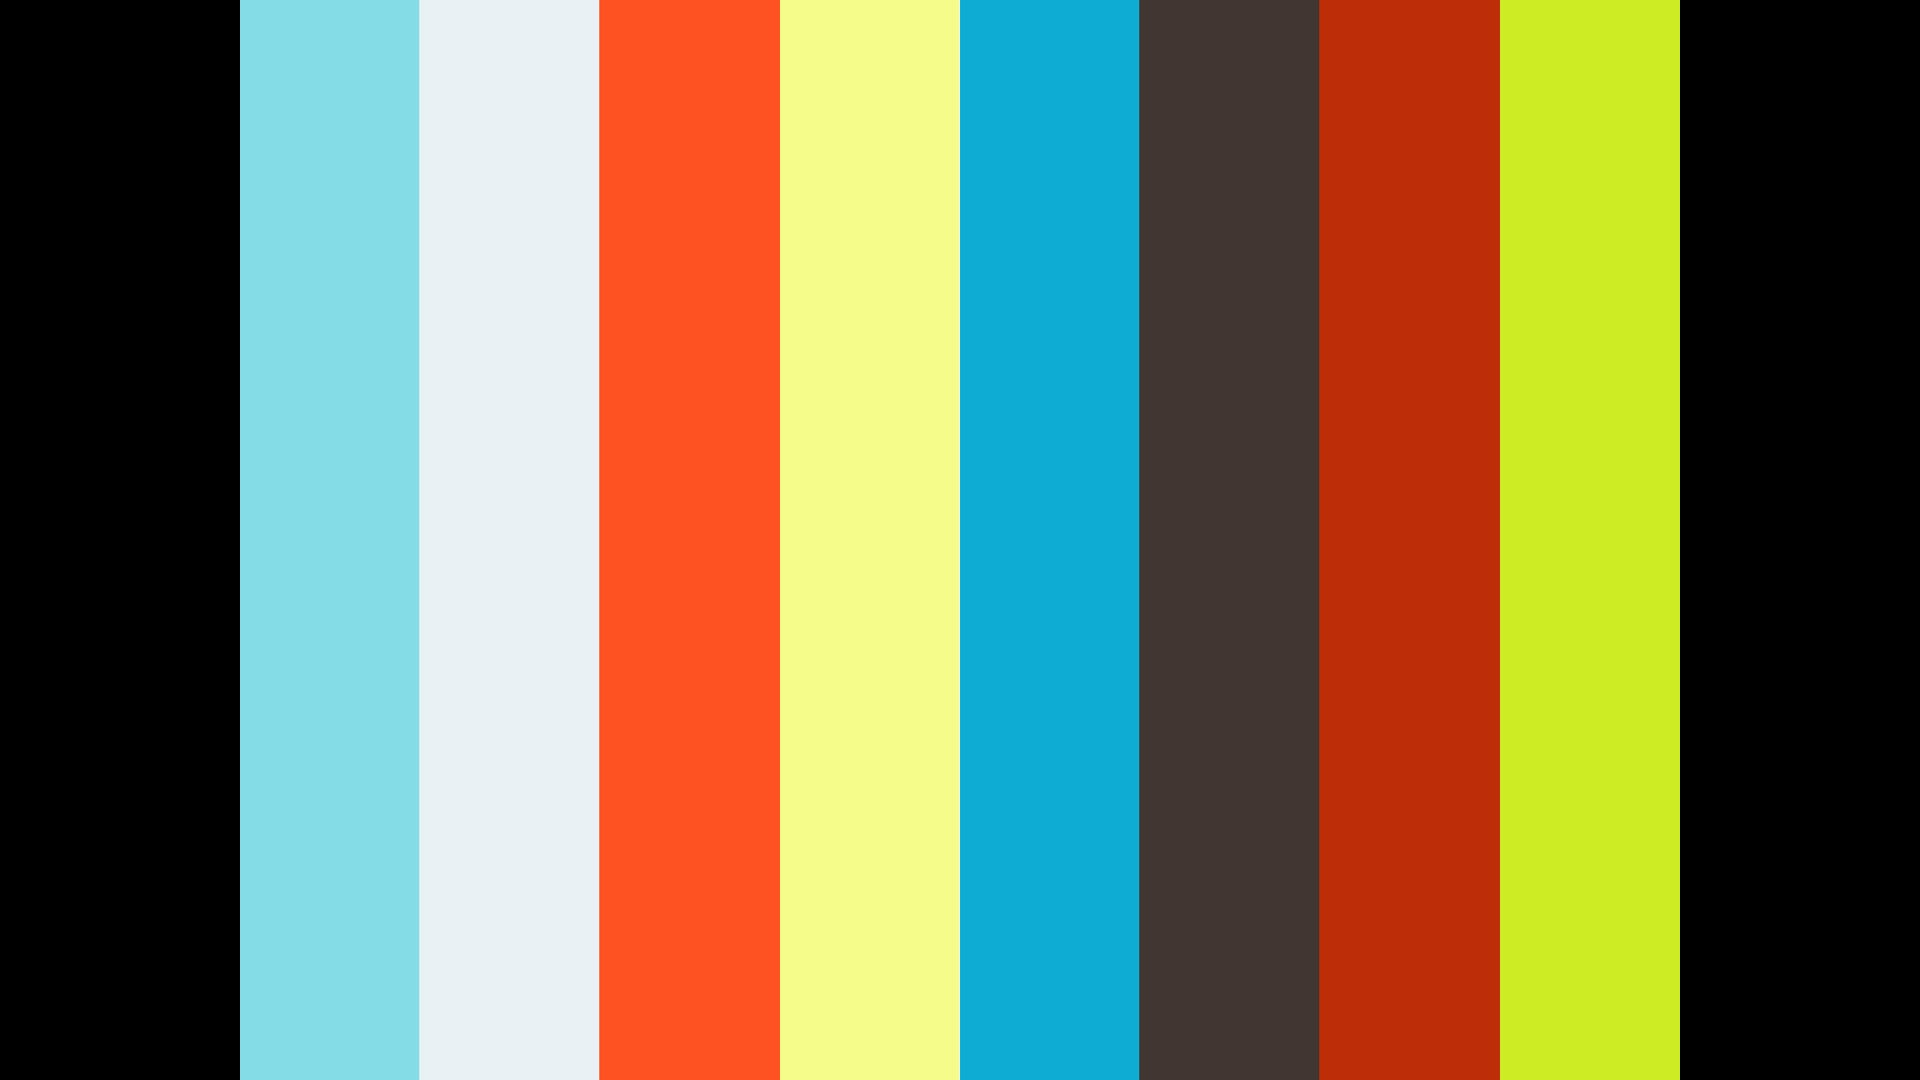 TRAVIS ADAMS CFAN STORY